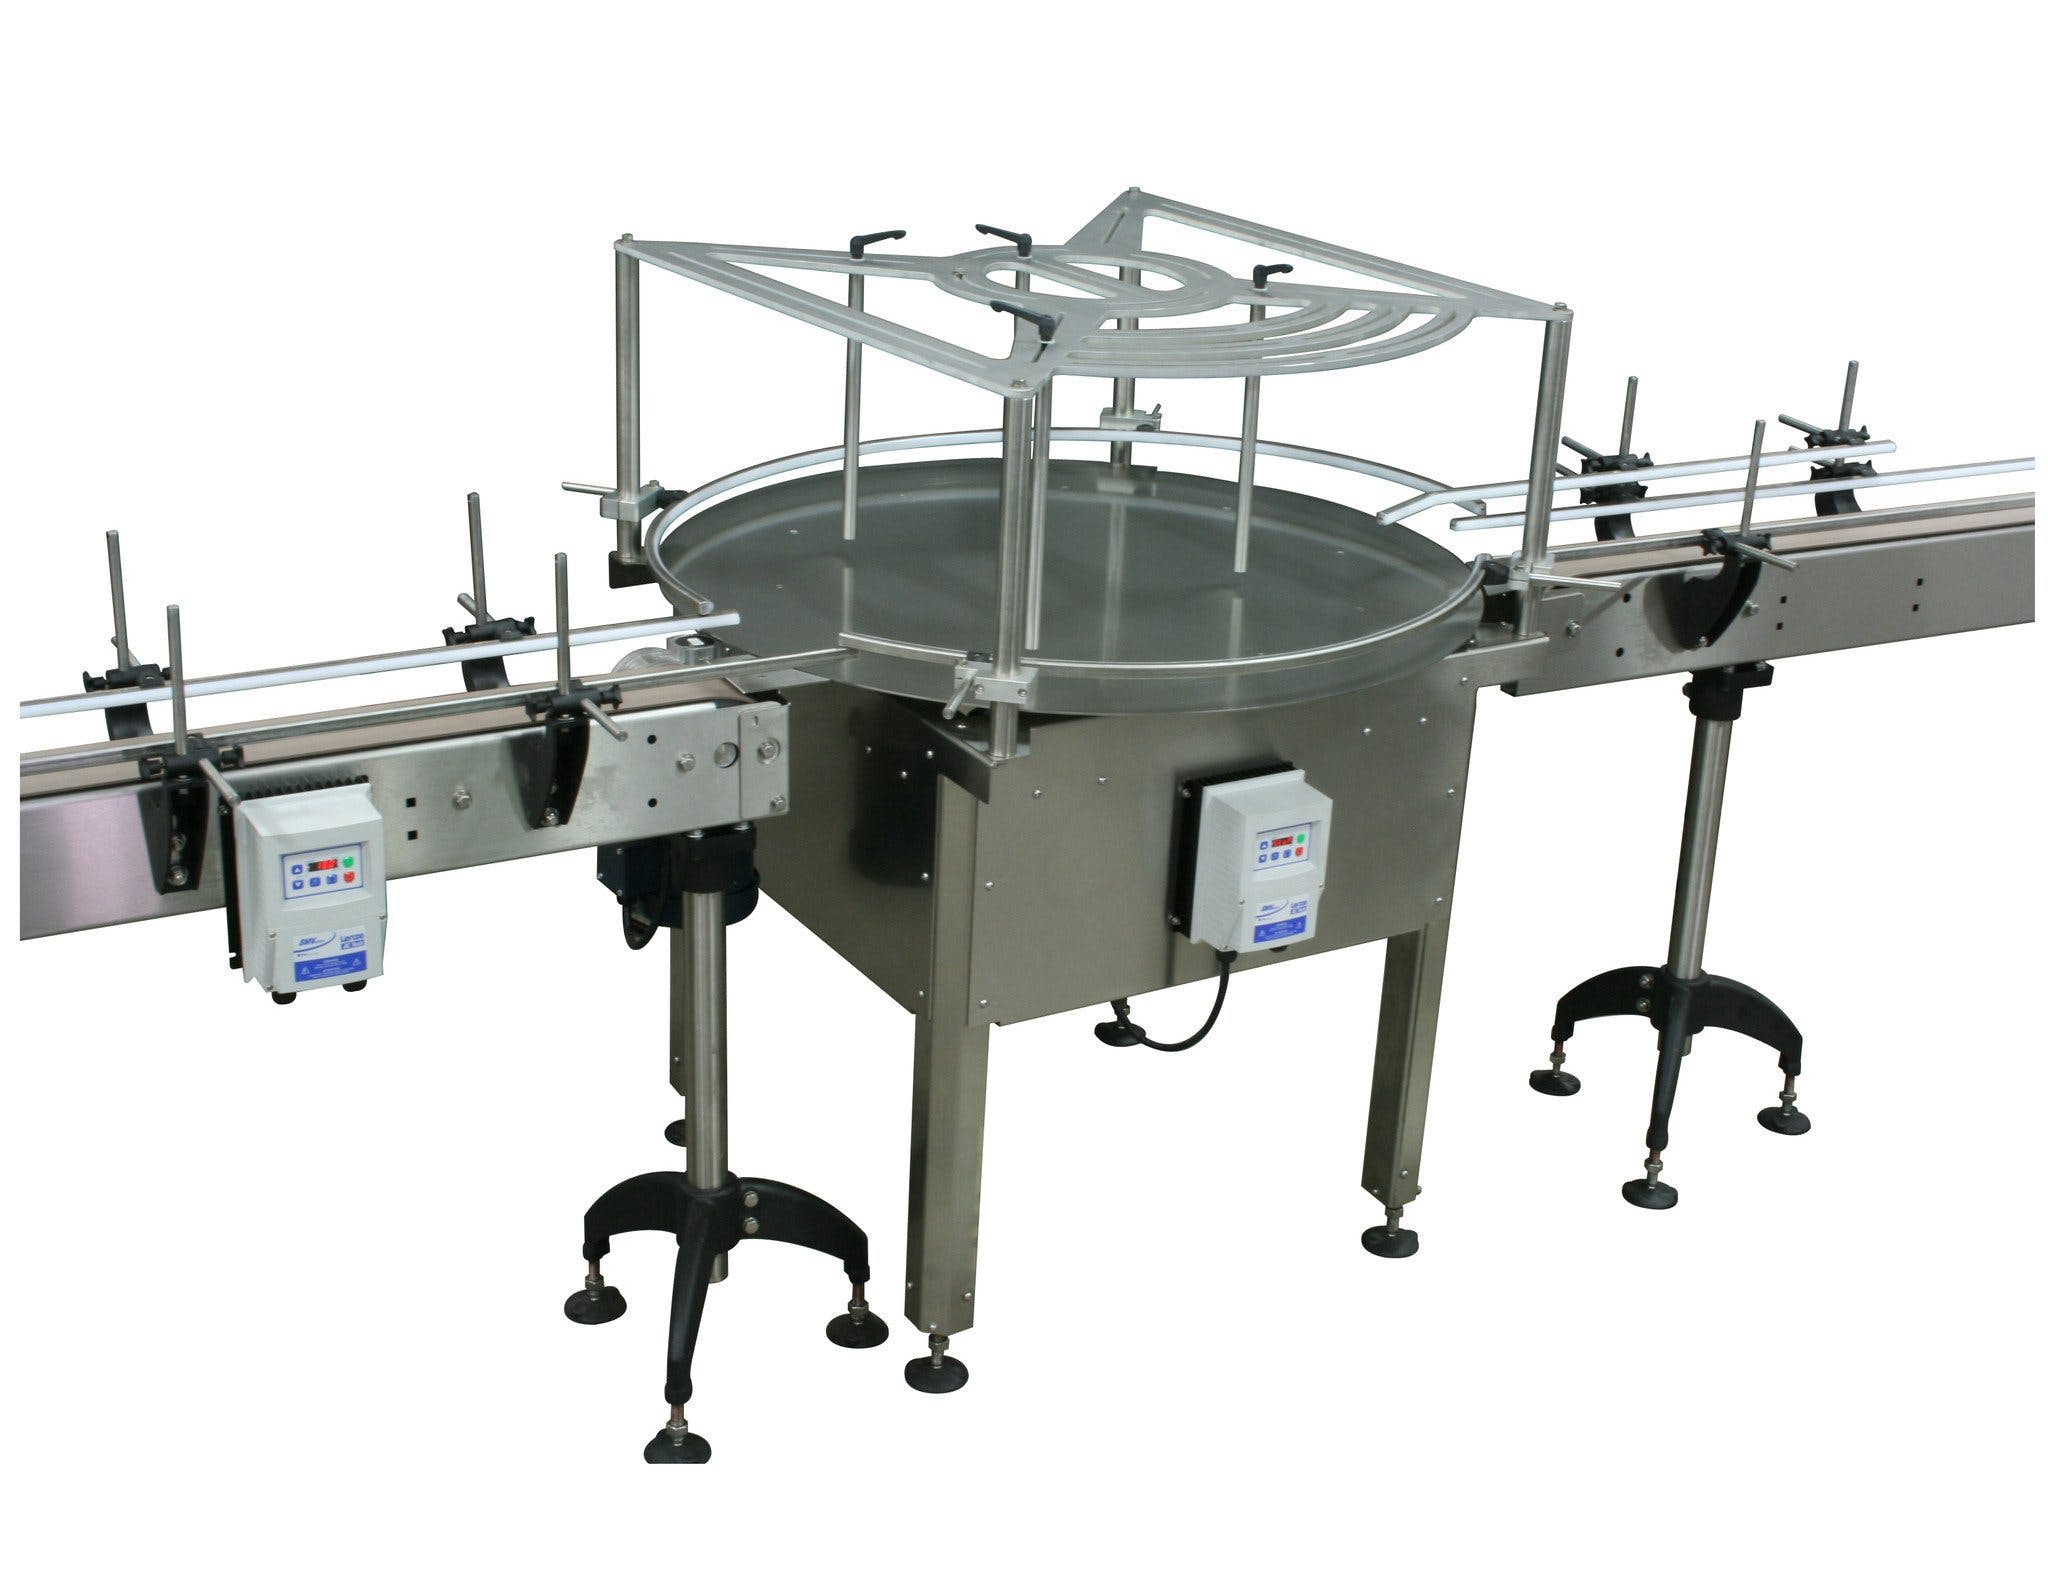 Accumulating Rotary Table Model RA-59 - sold by ACASI Machinery